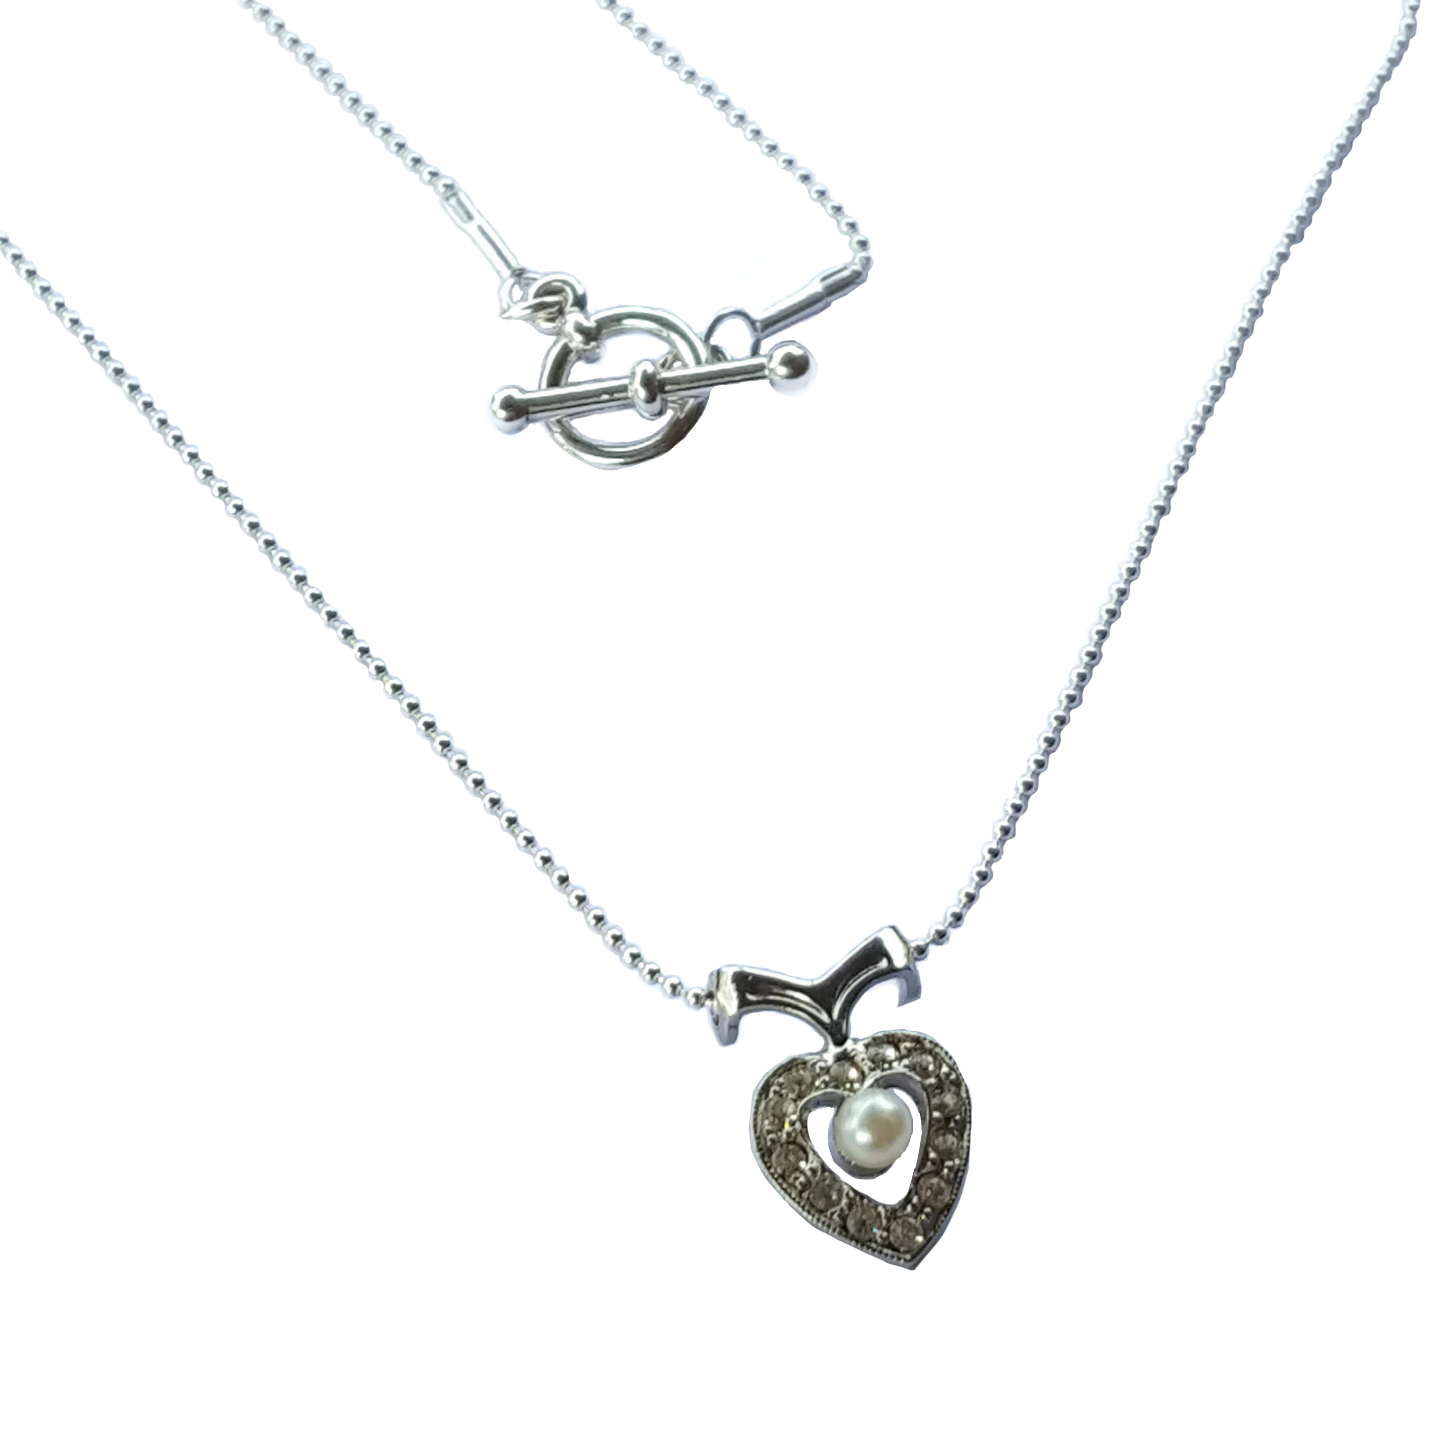 Sweet silver heart necklace with clasp.